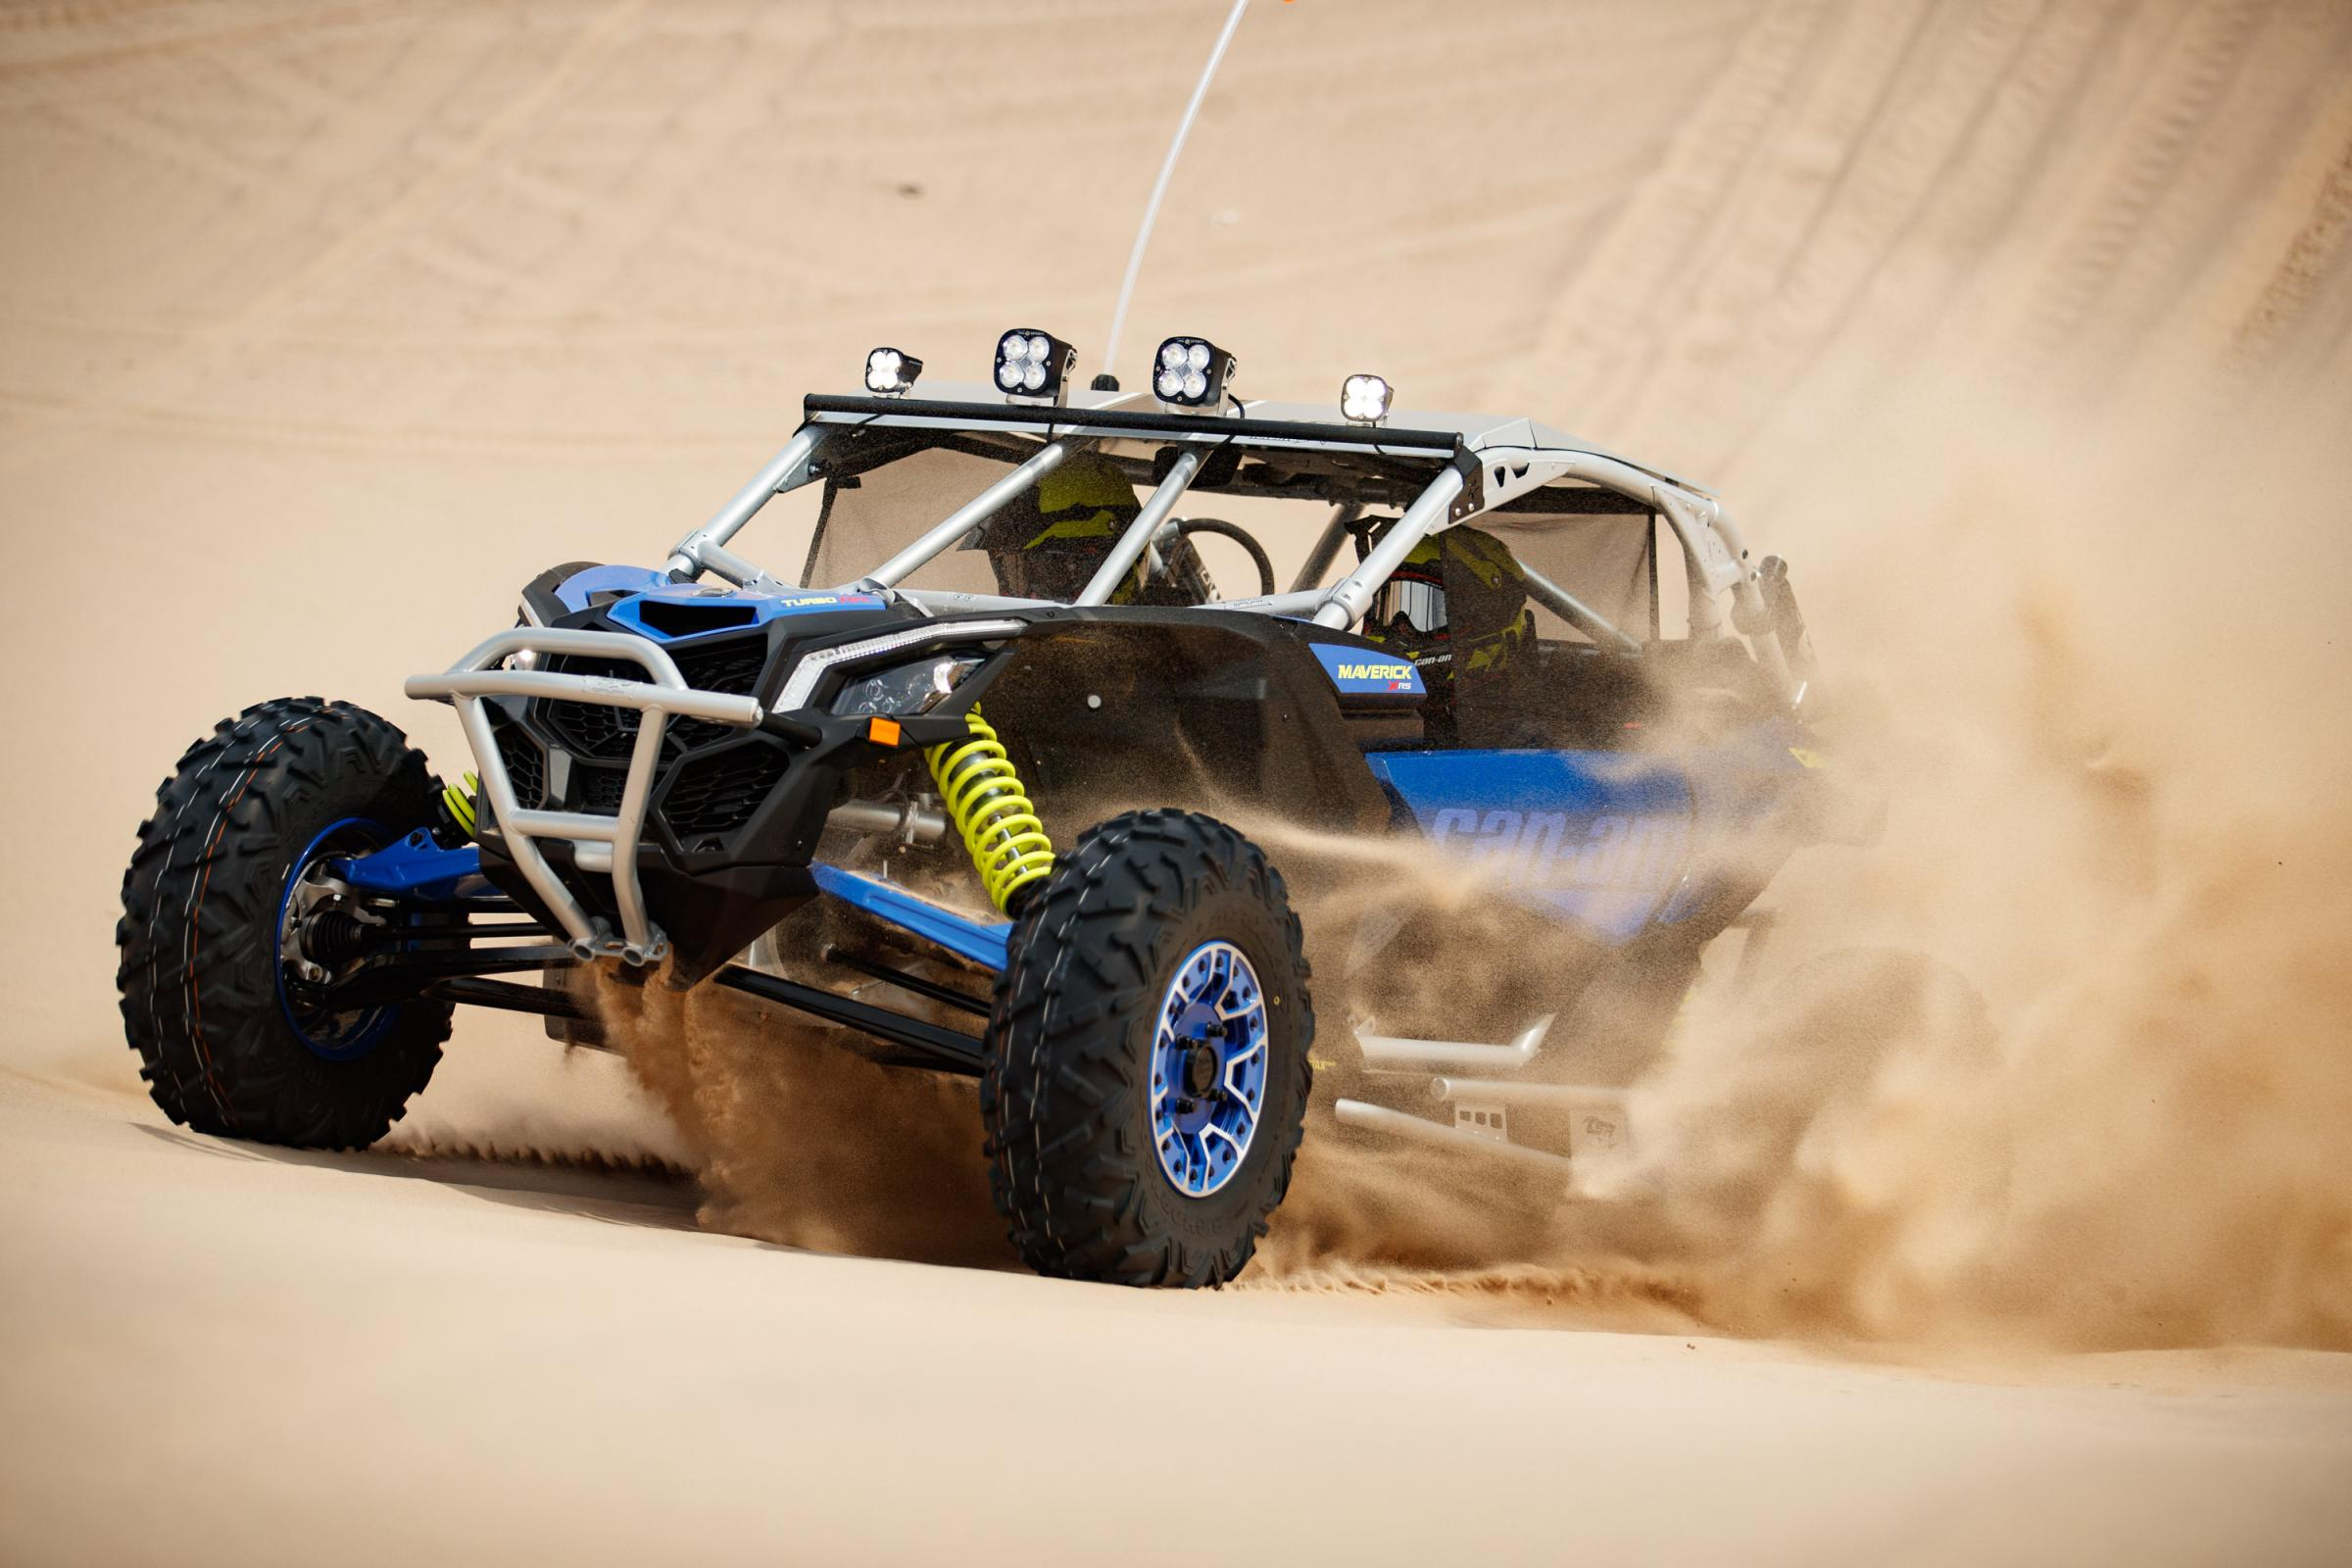 maverick-x-rs-18.jpg